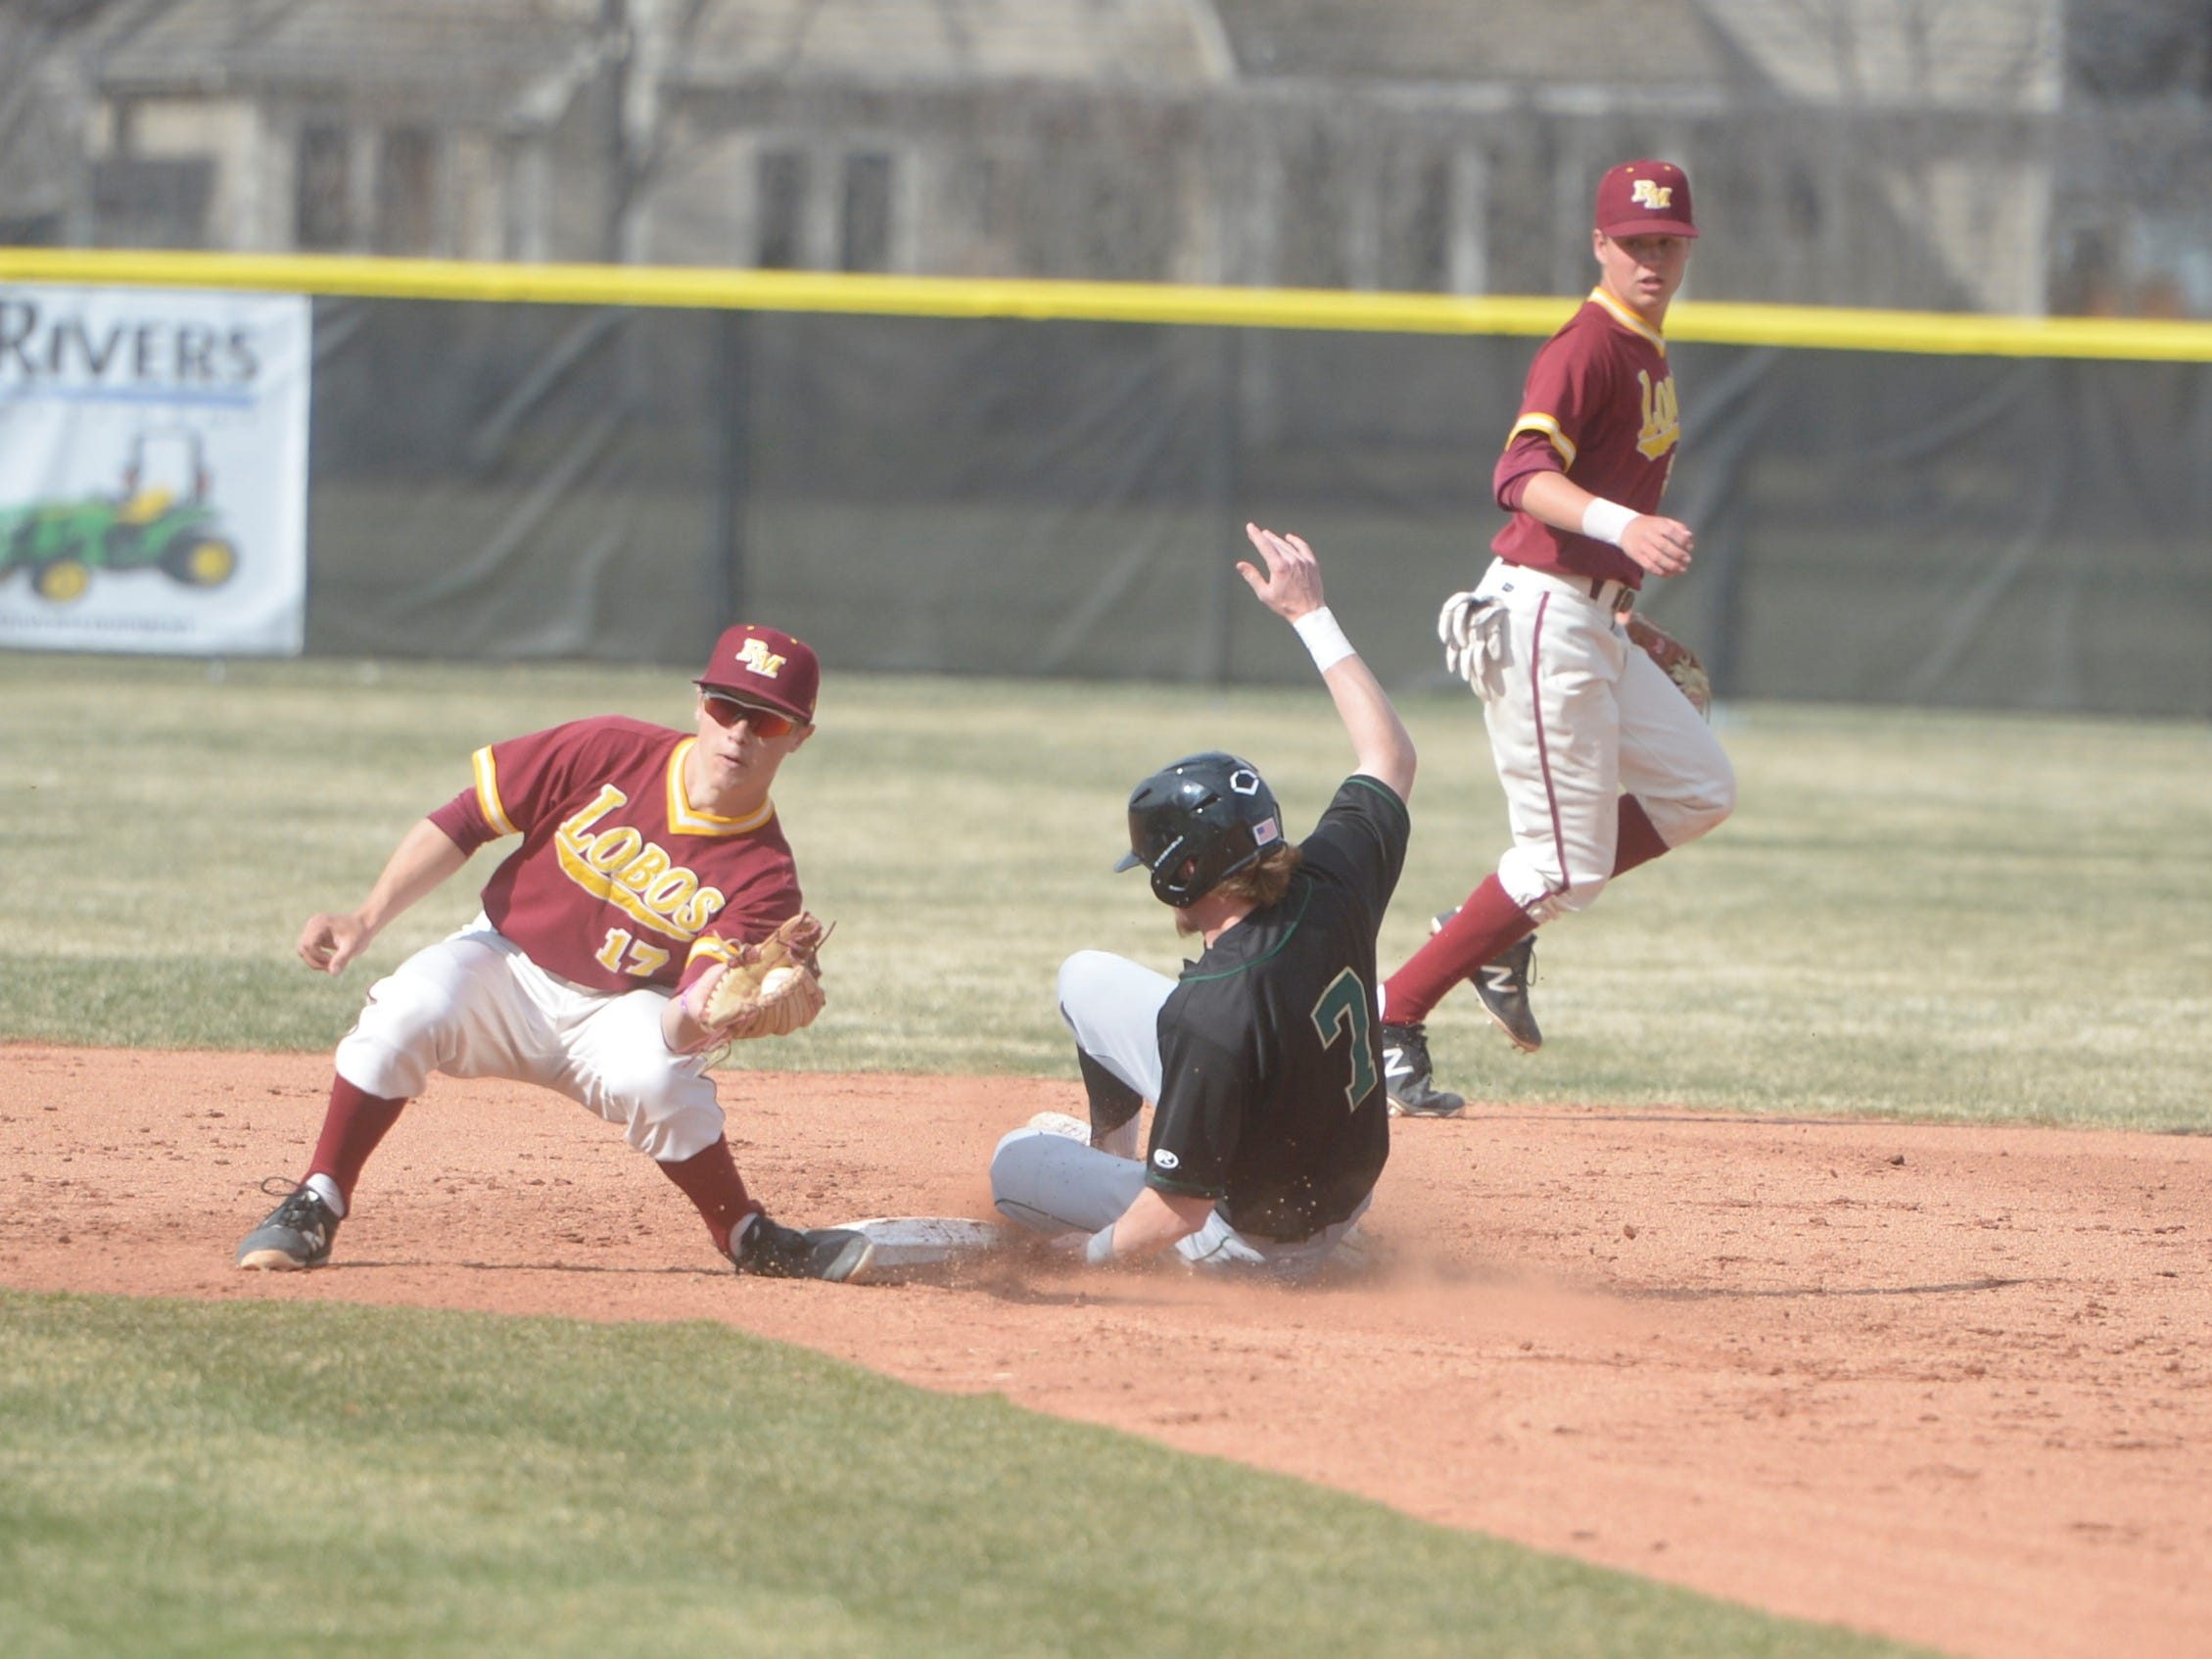 Rocky Mountain baseball second baseman Garrett Fisher attempts to tag out a base stealer during a game Wednesday, April 3, 2019 against Mountain Vista. Mountain Vista won 10-2.